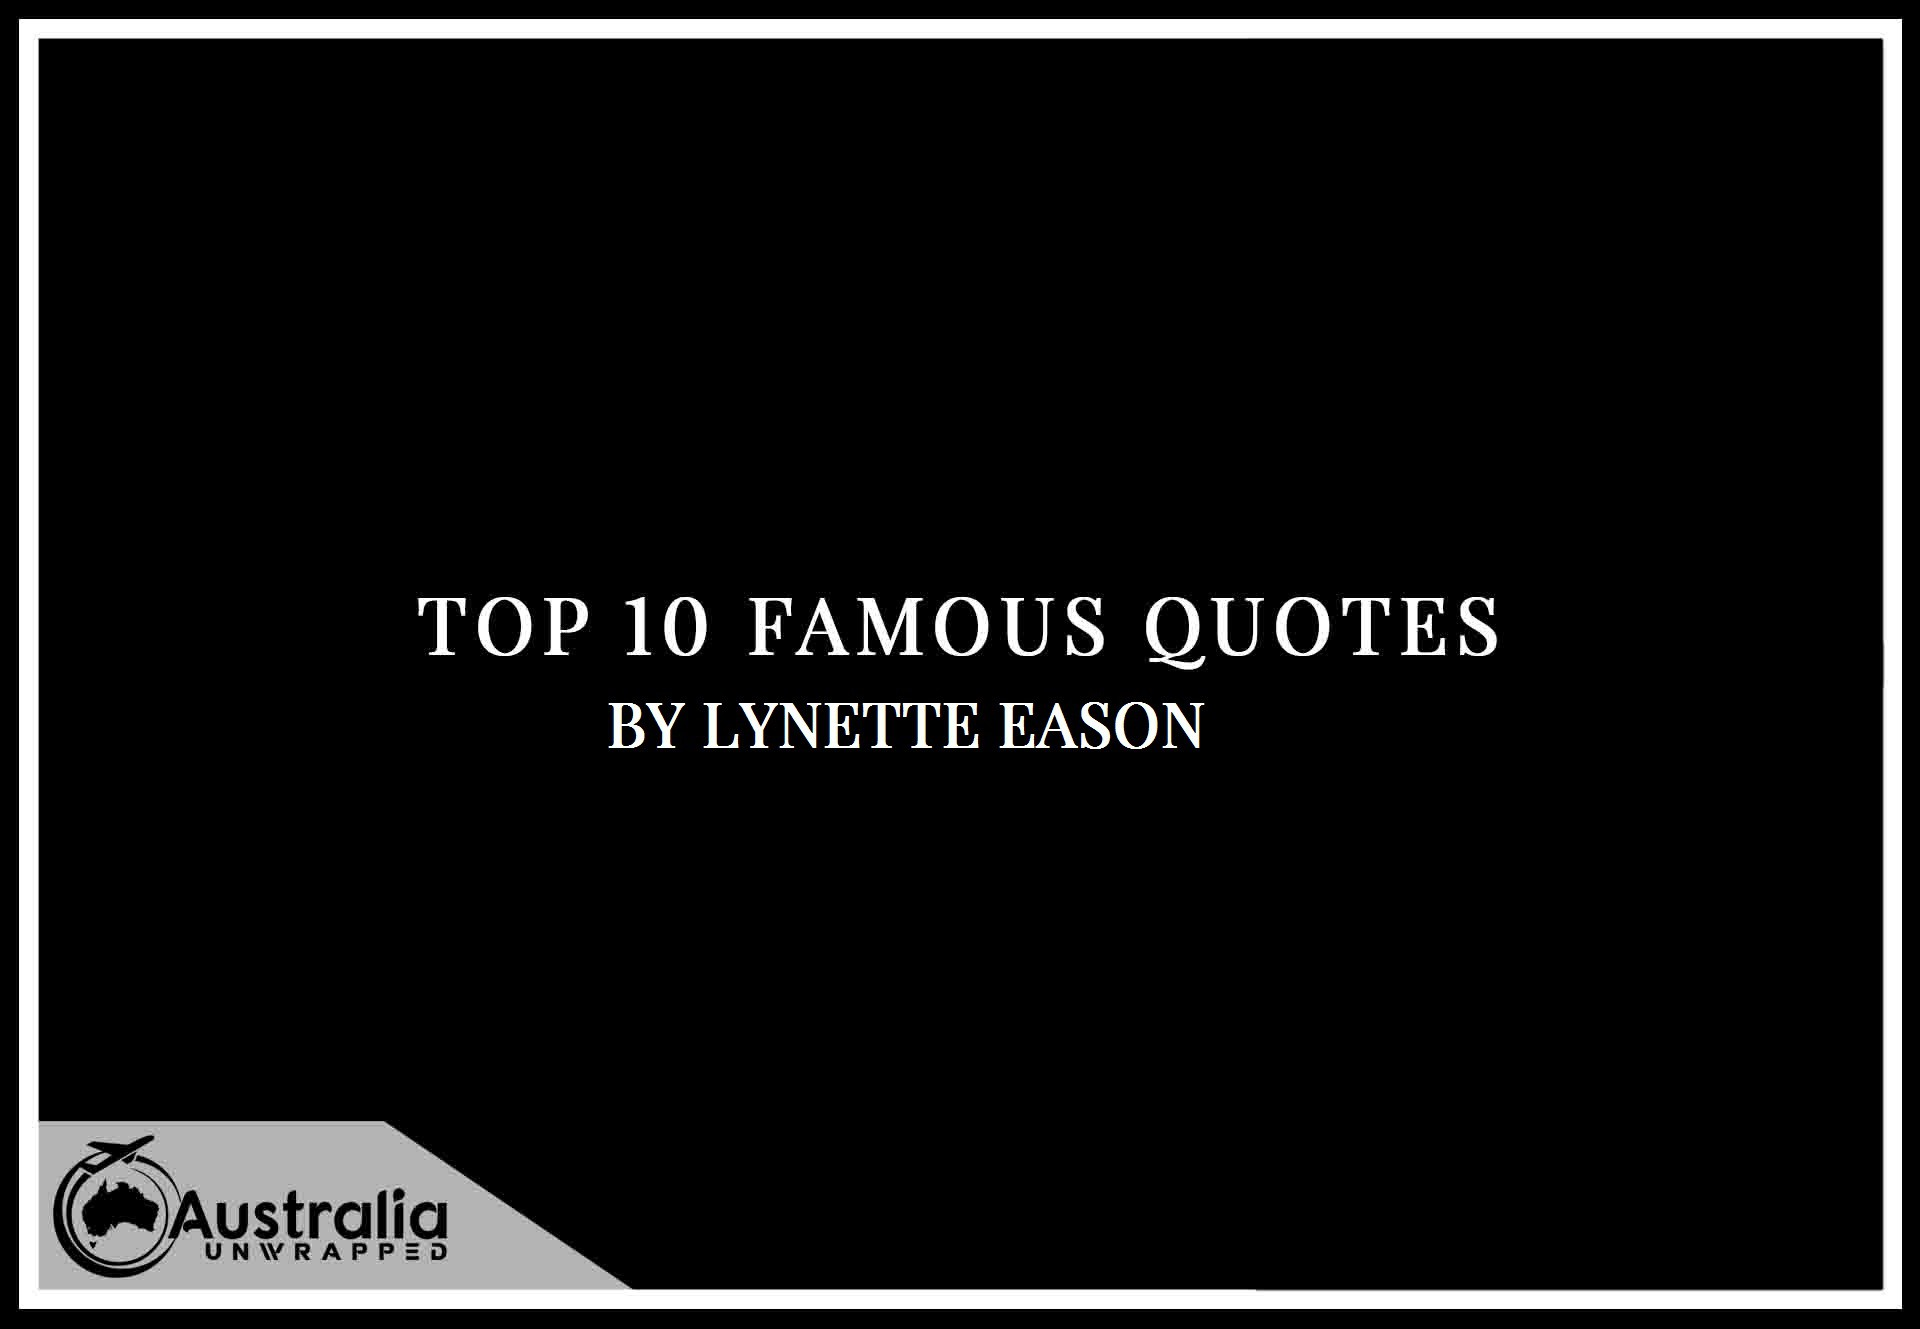 Lynette Eason's Top 10 Popular and Famous Quotes